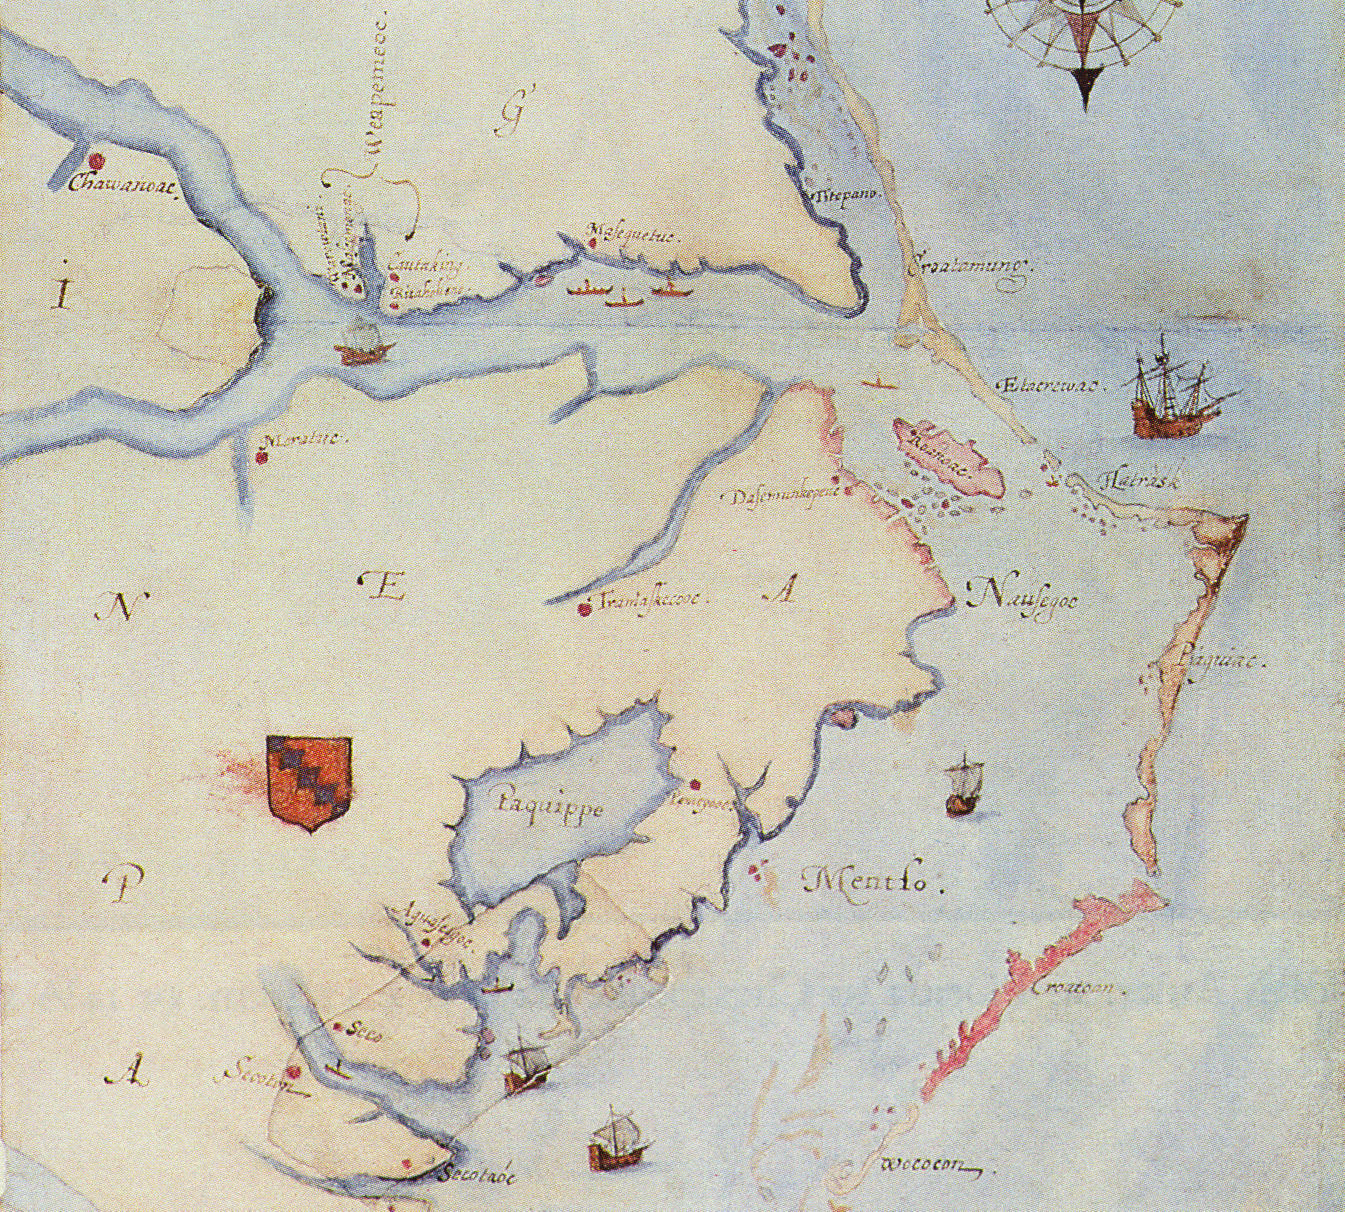 John White Map Chowan Fort Discovery – Analysis